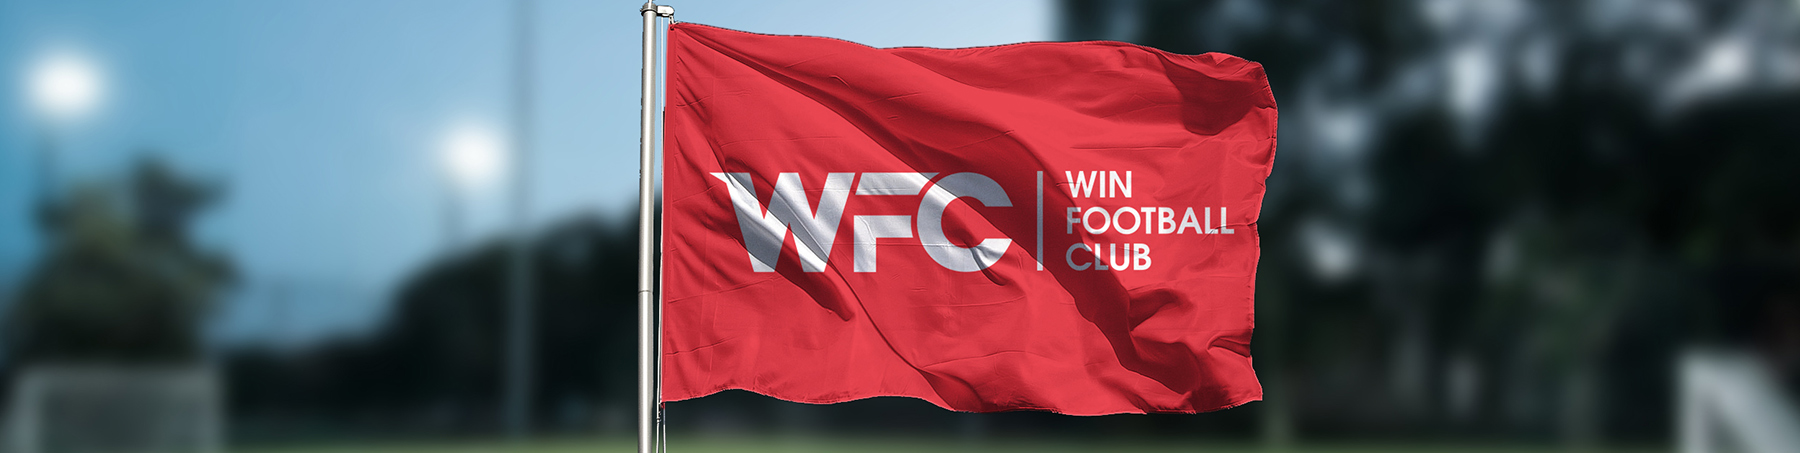 WFC-flag with logo and name